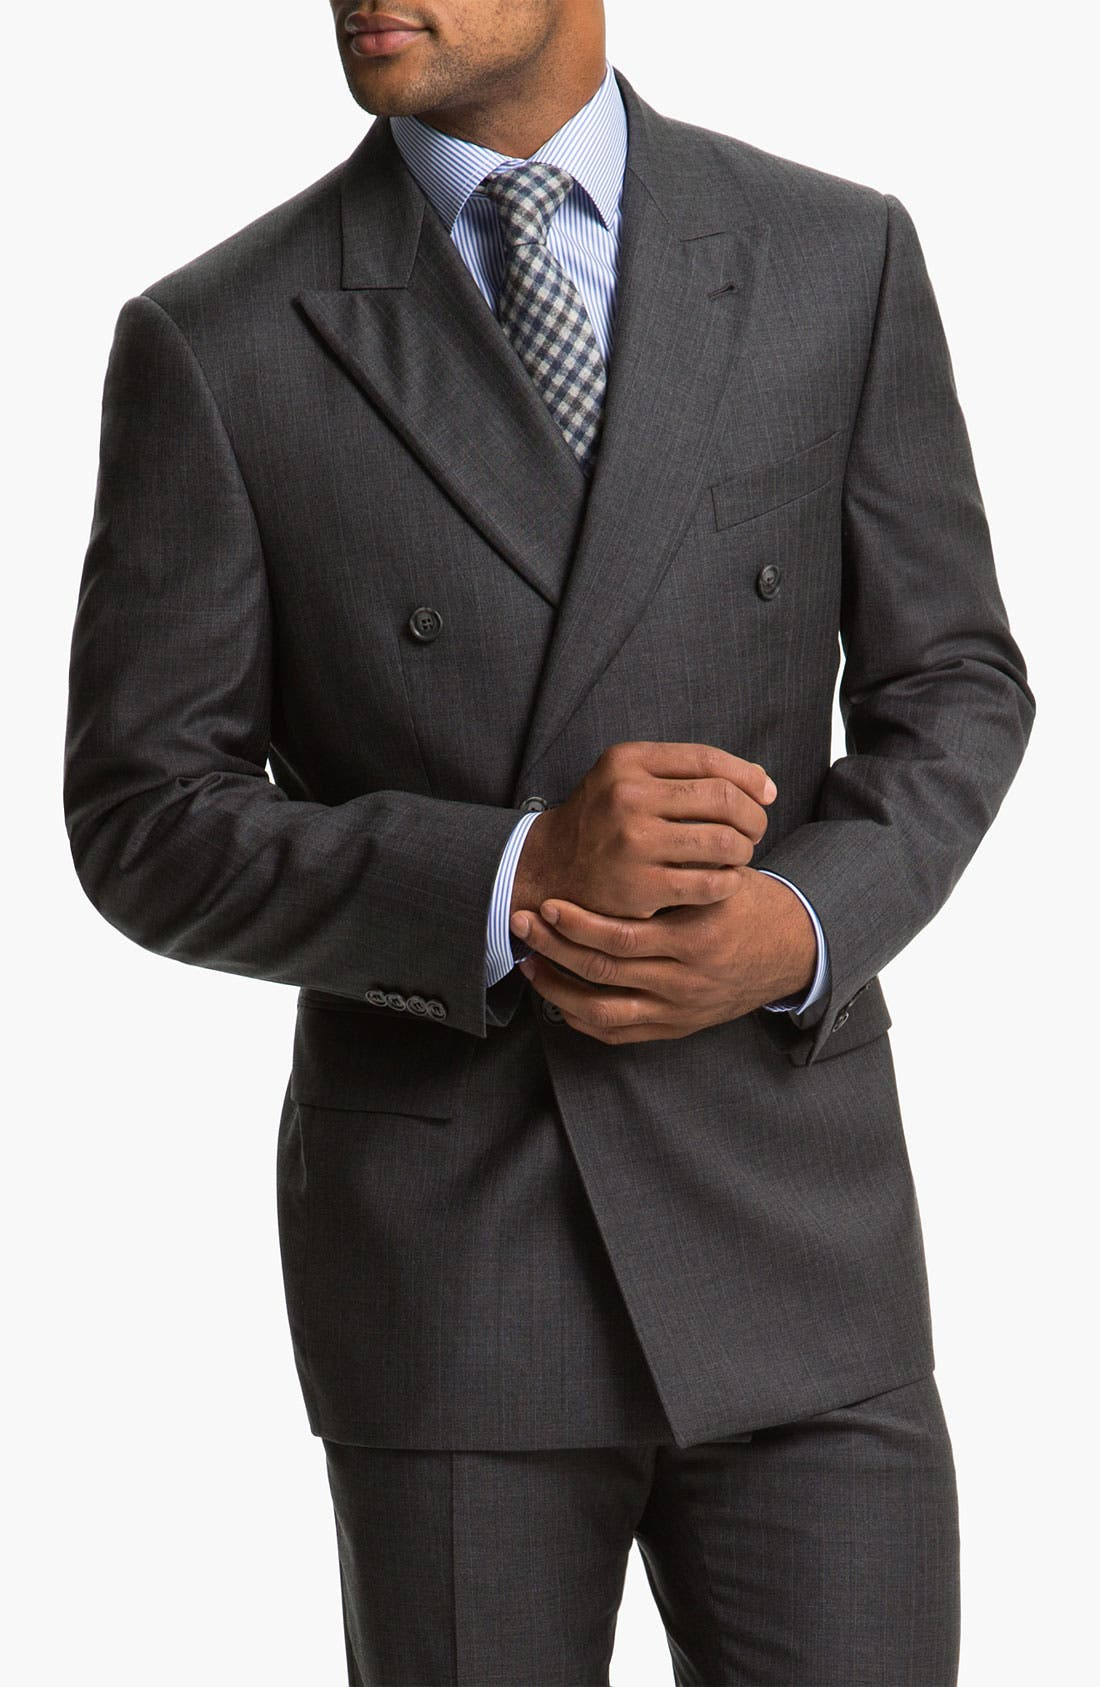 Alternate Image 1 Selected - Joseph Abboud 'Profile' Double Breasted Wool Suit